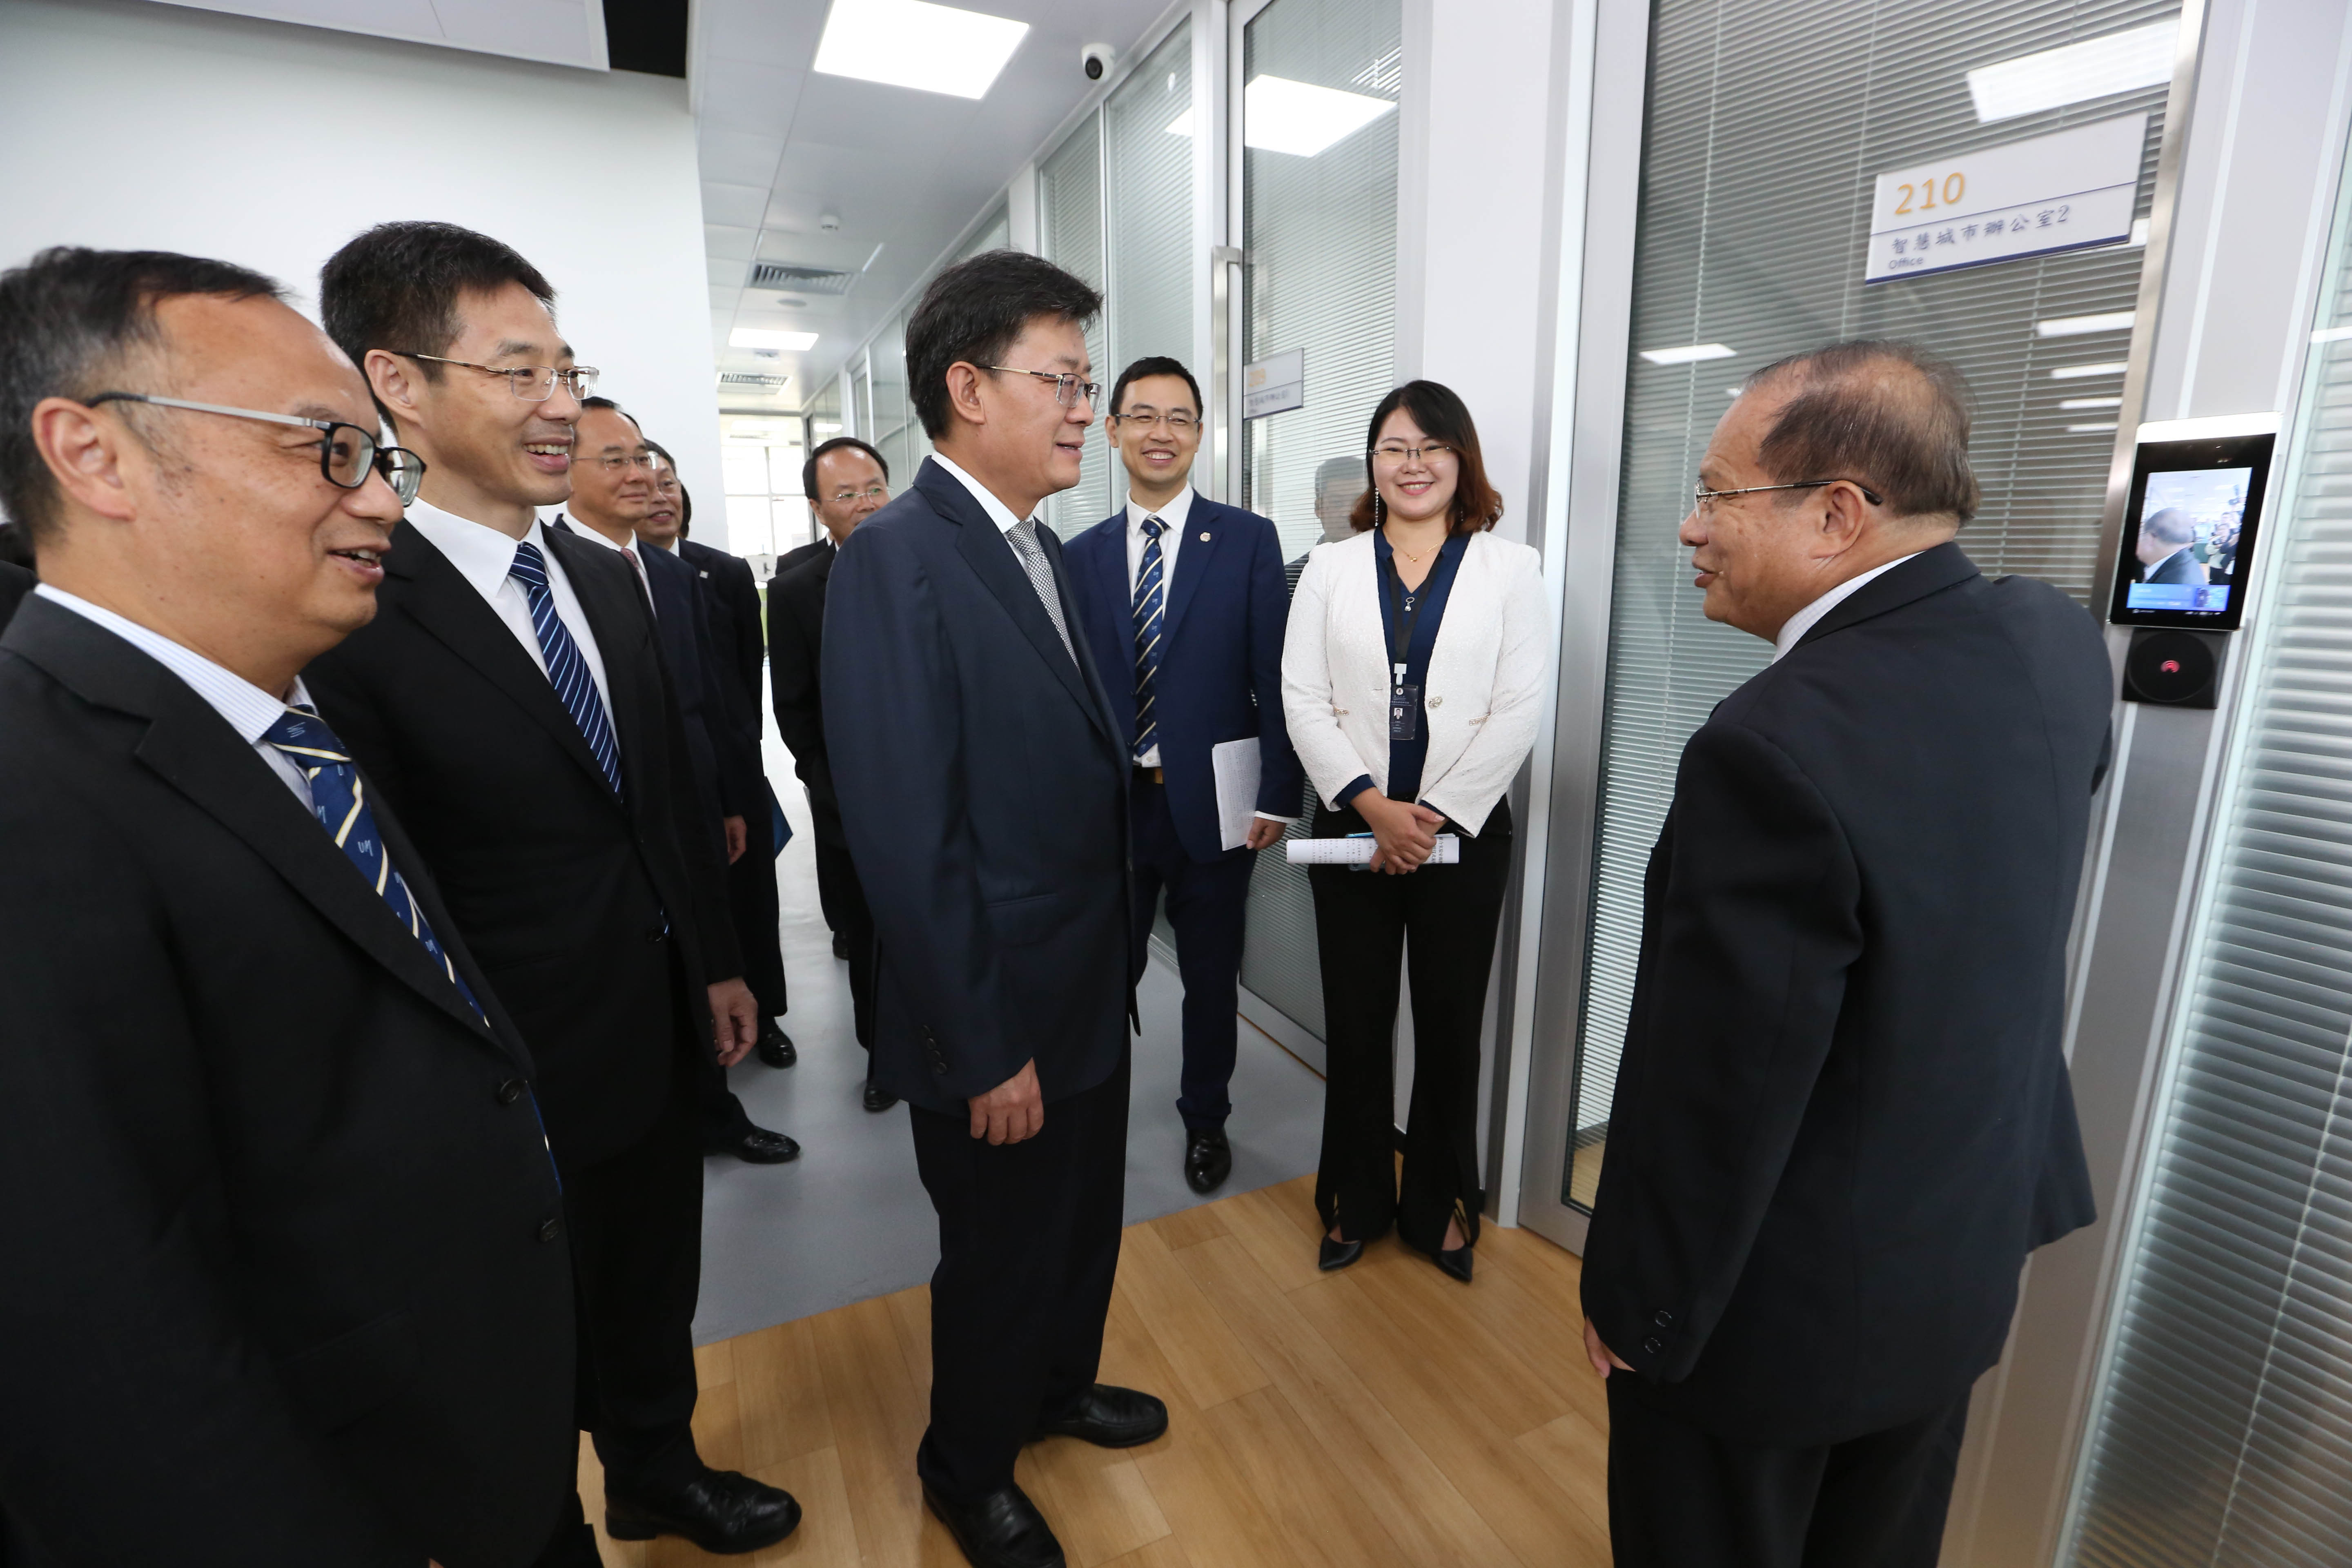 Guests visit the Zhuhai UM Science & Technology Research Institute